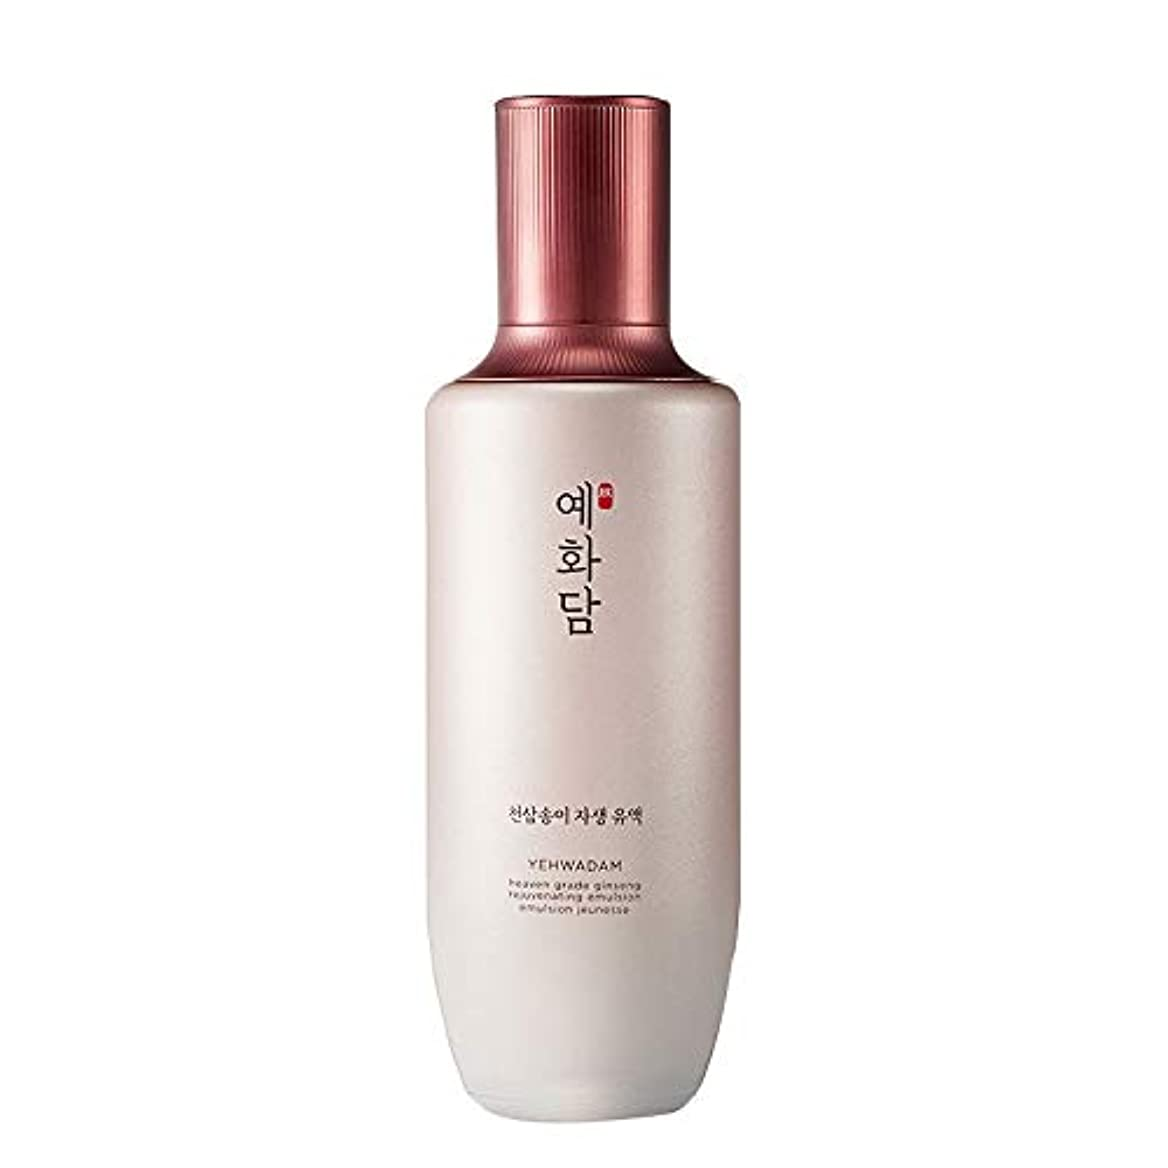 広い消毒剤カリキュラム[ザフェイスショップ]The Faceshop YEHWADAM天参松栮自生乳液 140ml The Faceshop YEHWADAM Heaven Grade Ginseng Regenerating Emulsion...